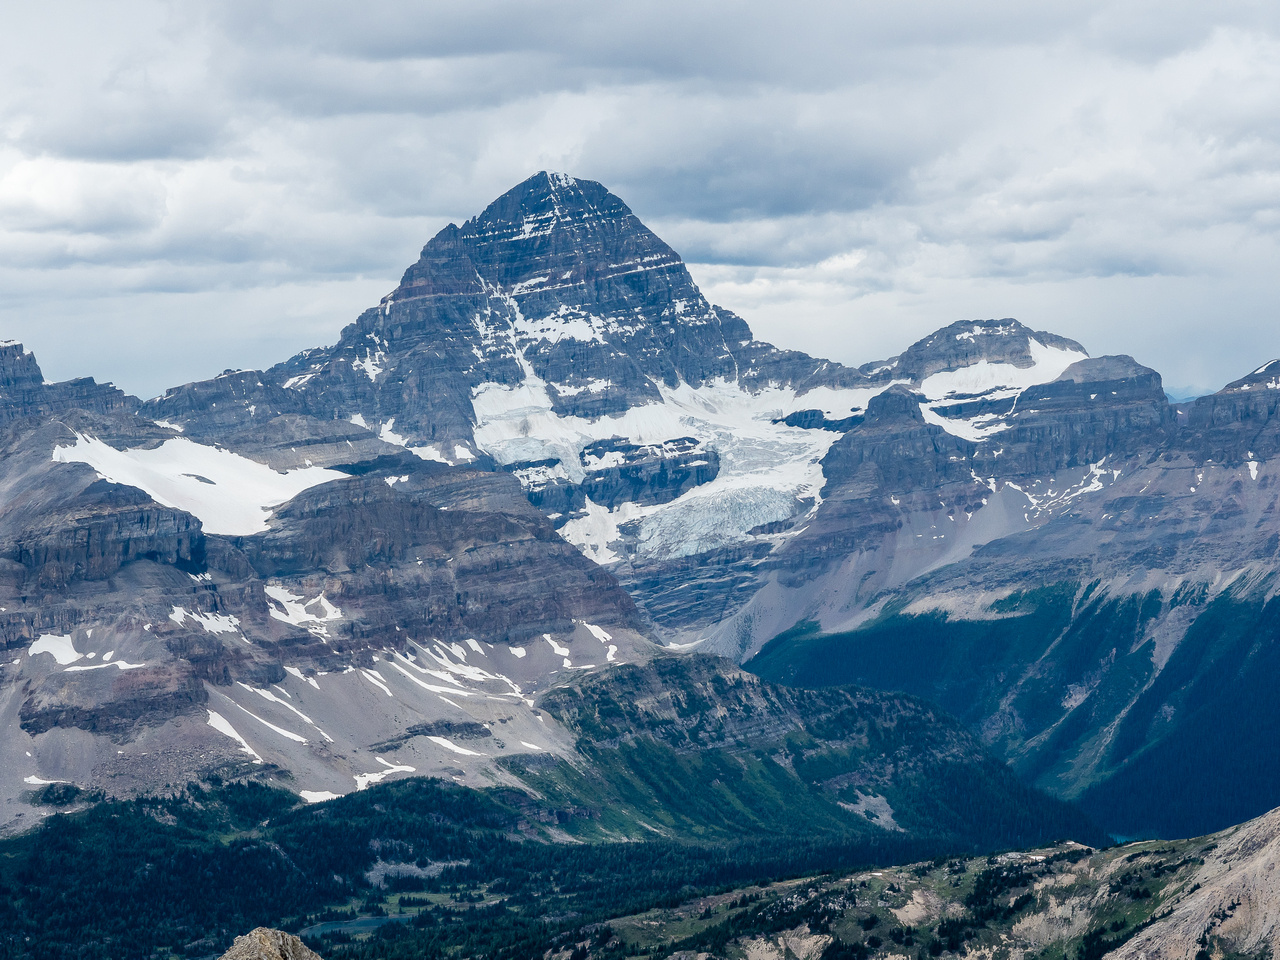 Mount Assiniboine looms over Marvel Pass.